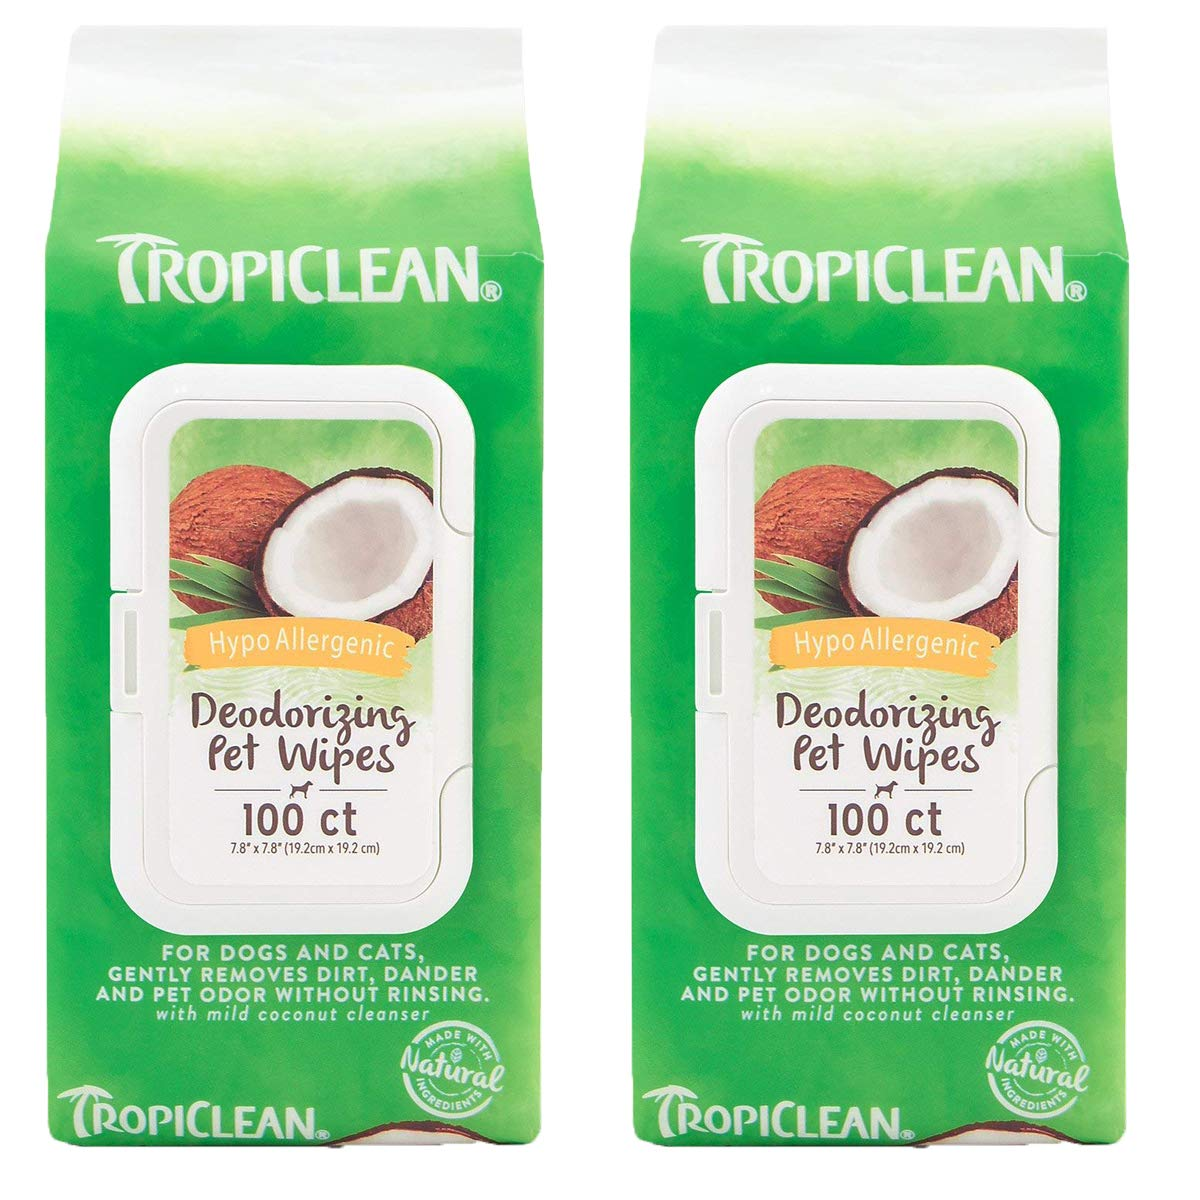 Tropiclean Inc. Hypo Allergenic Wipes for Pets, 200ct